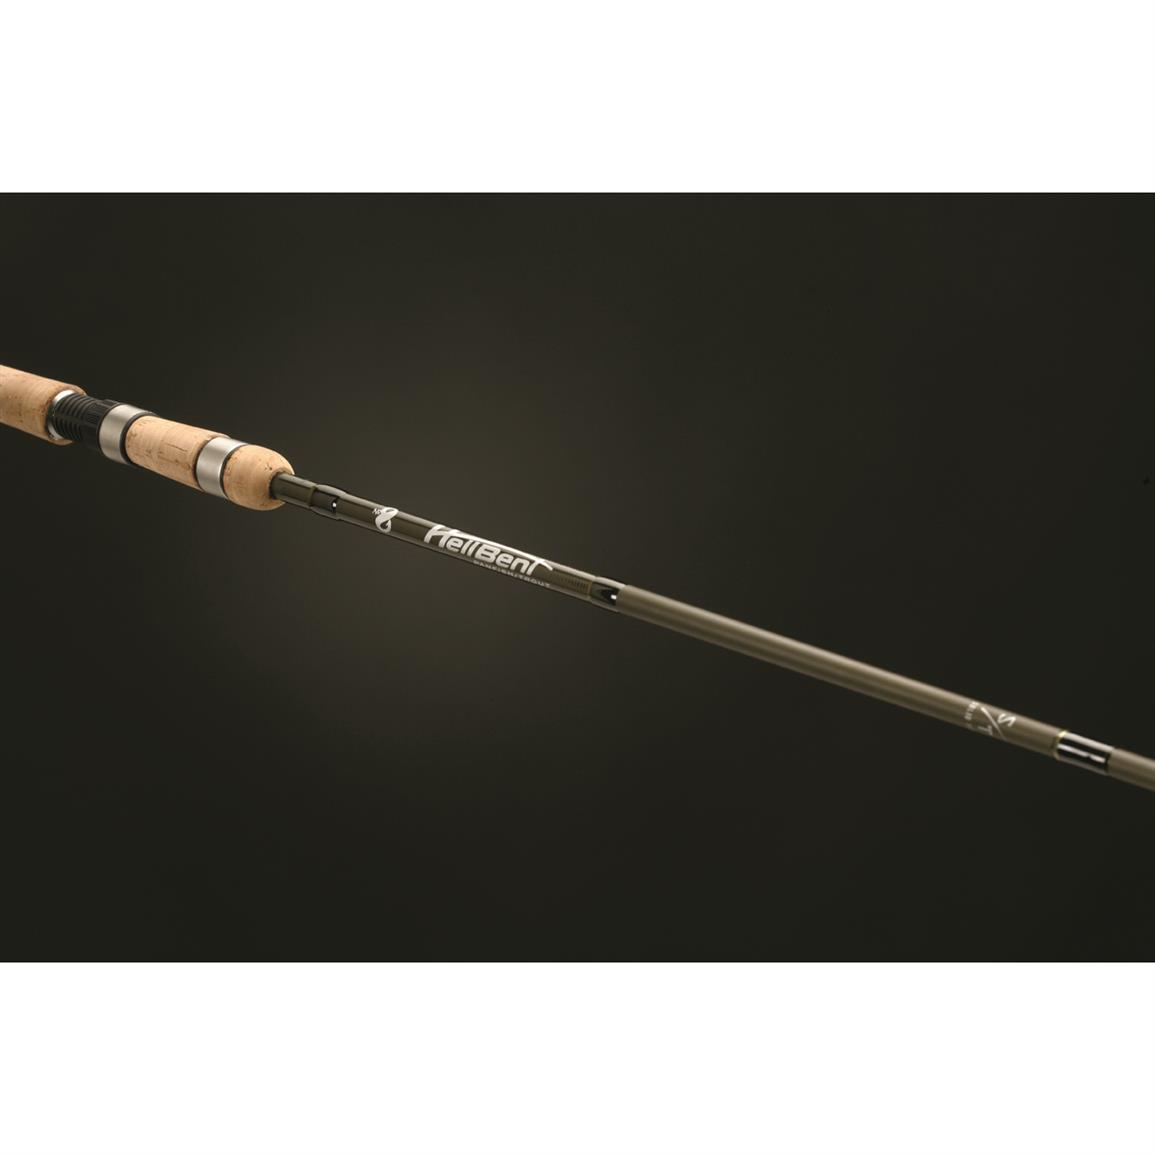 No 8 hellbent panfish spinning rod ultra light 662956 for Light fishing rods